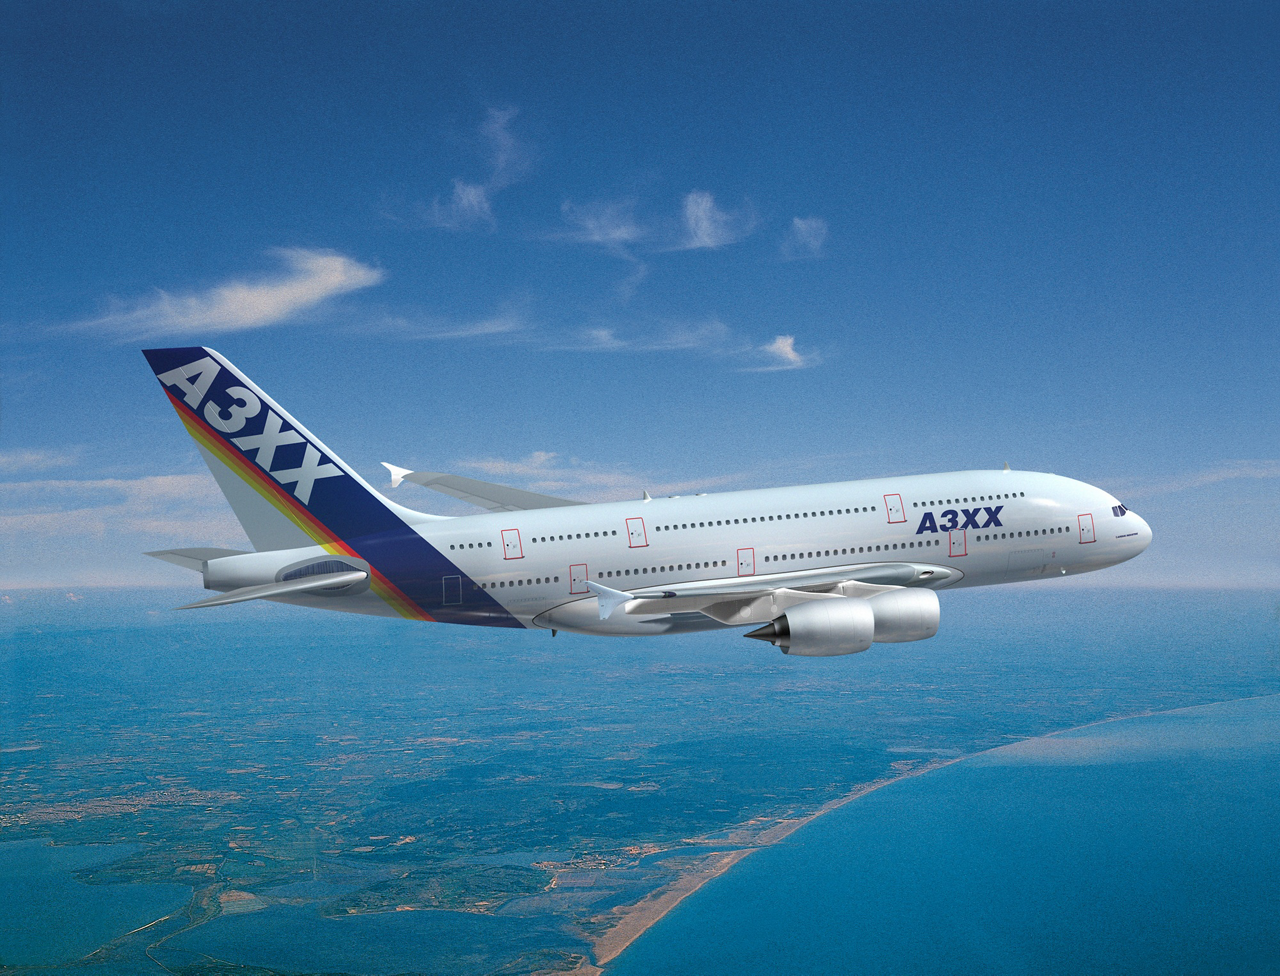 An in-flight representation of Airbus' A3XX aircraft, later designated the A380.